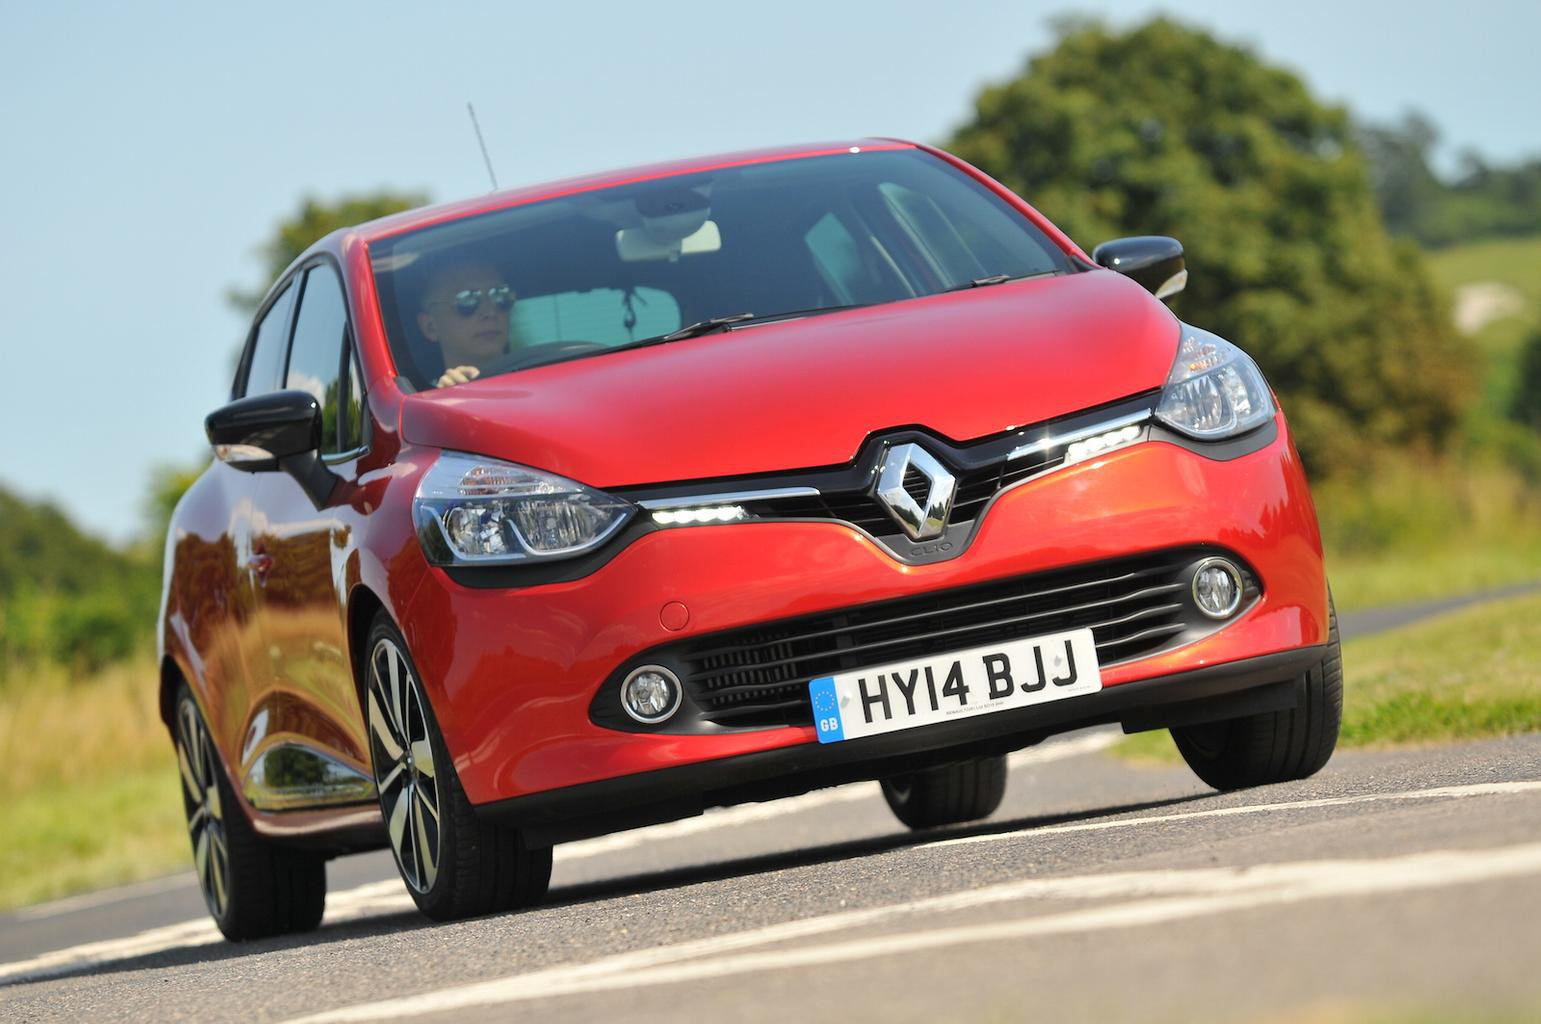 Deal of the day: Renault Clio